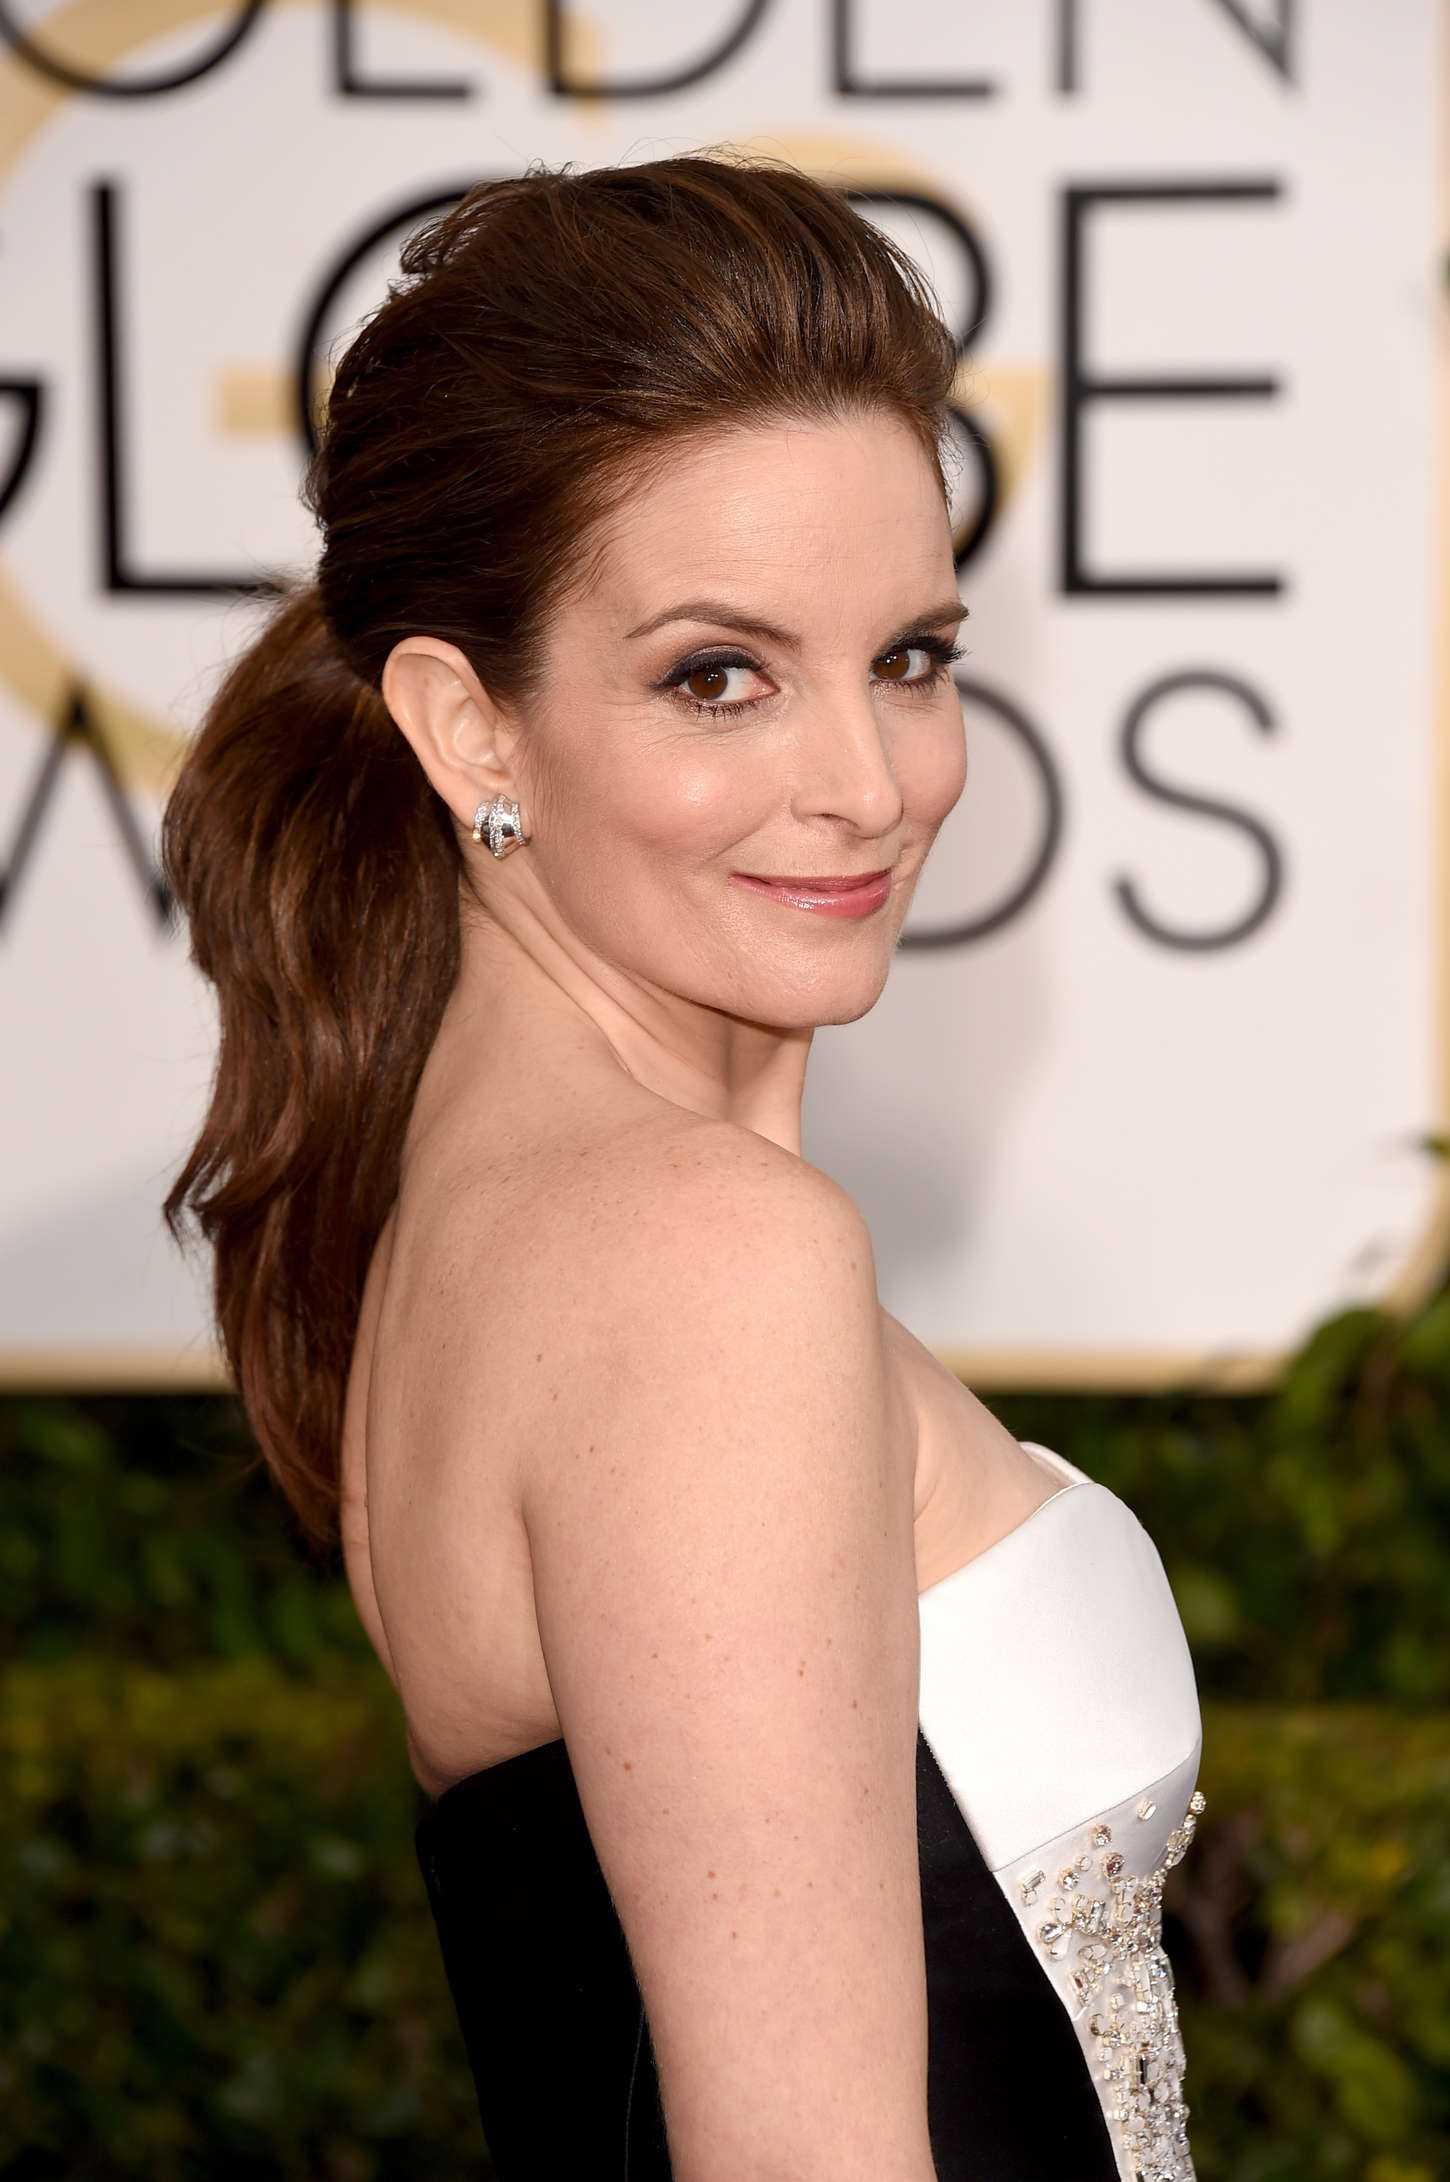 Tina Fey Annual Golden Globe Awards in Beverly Hills